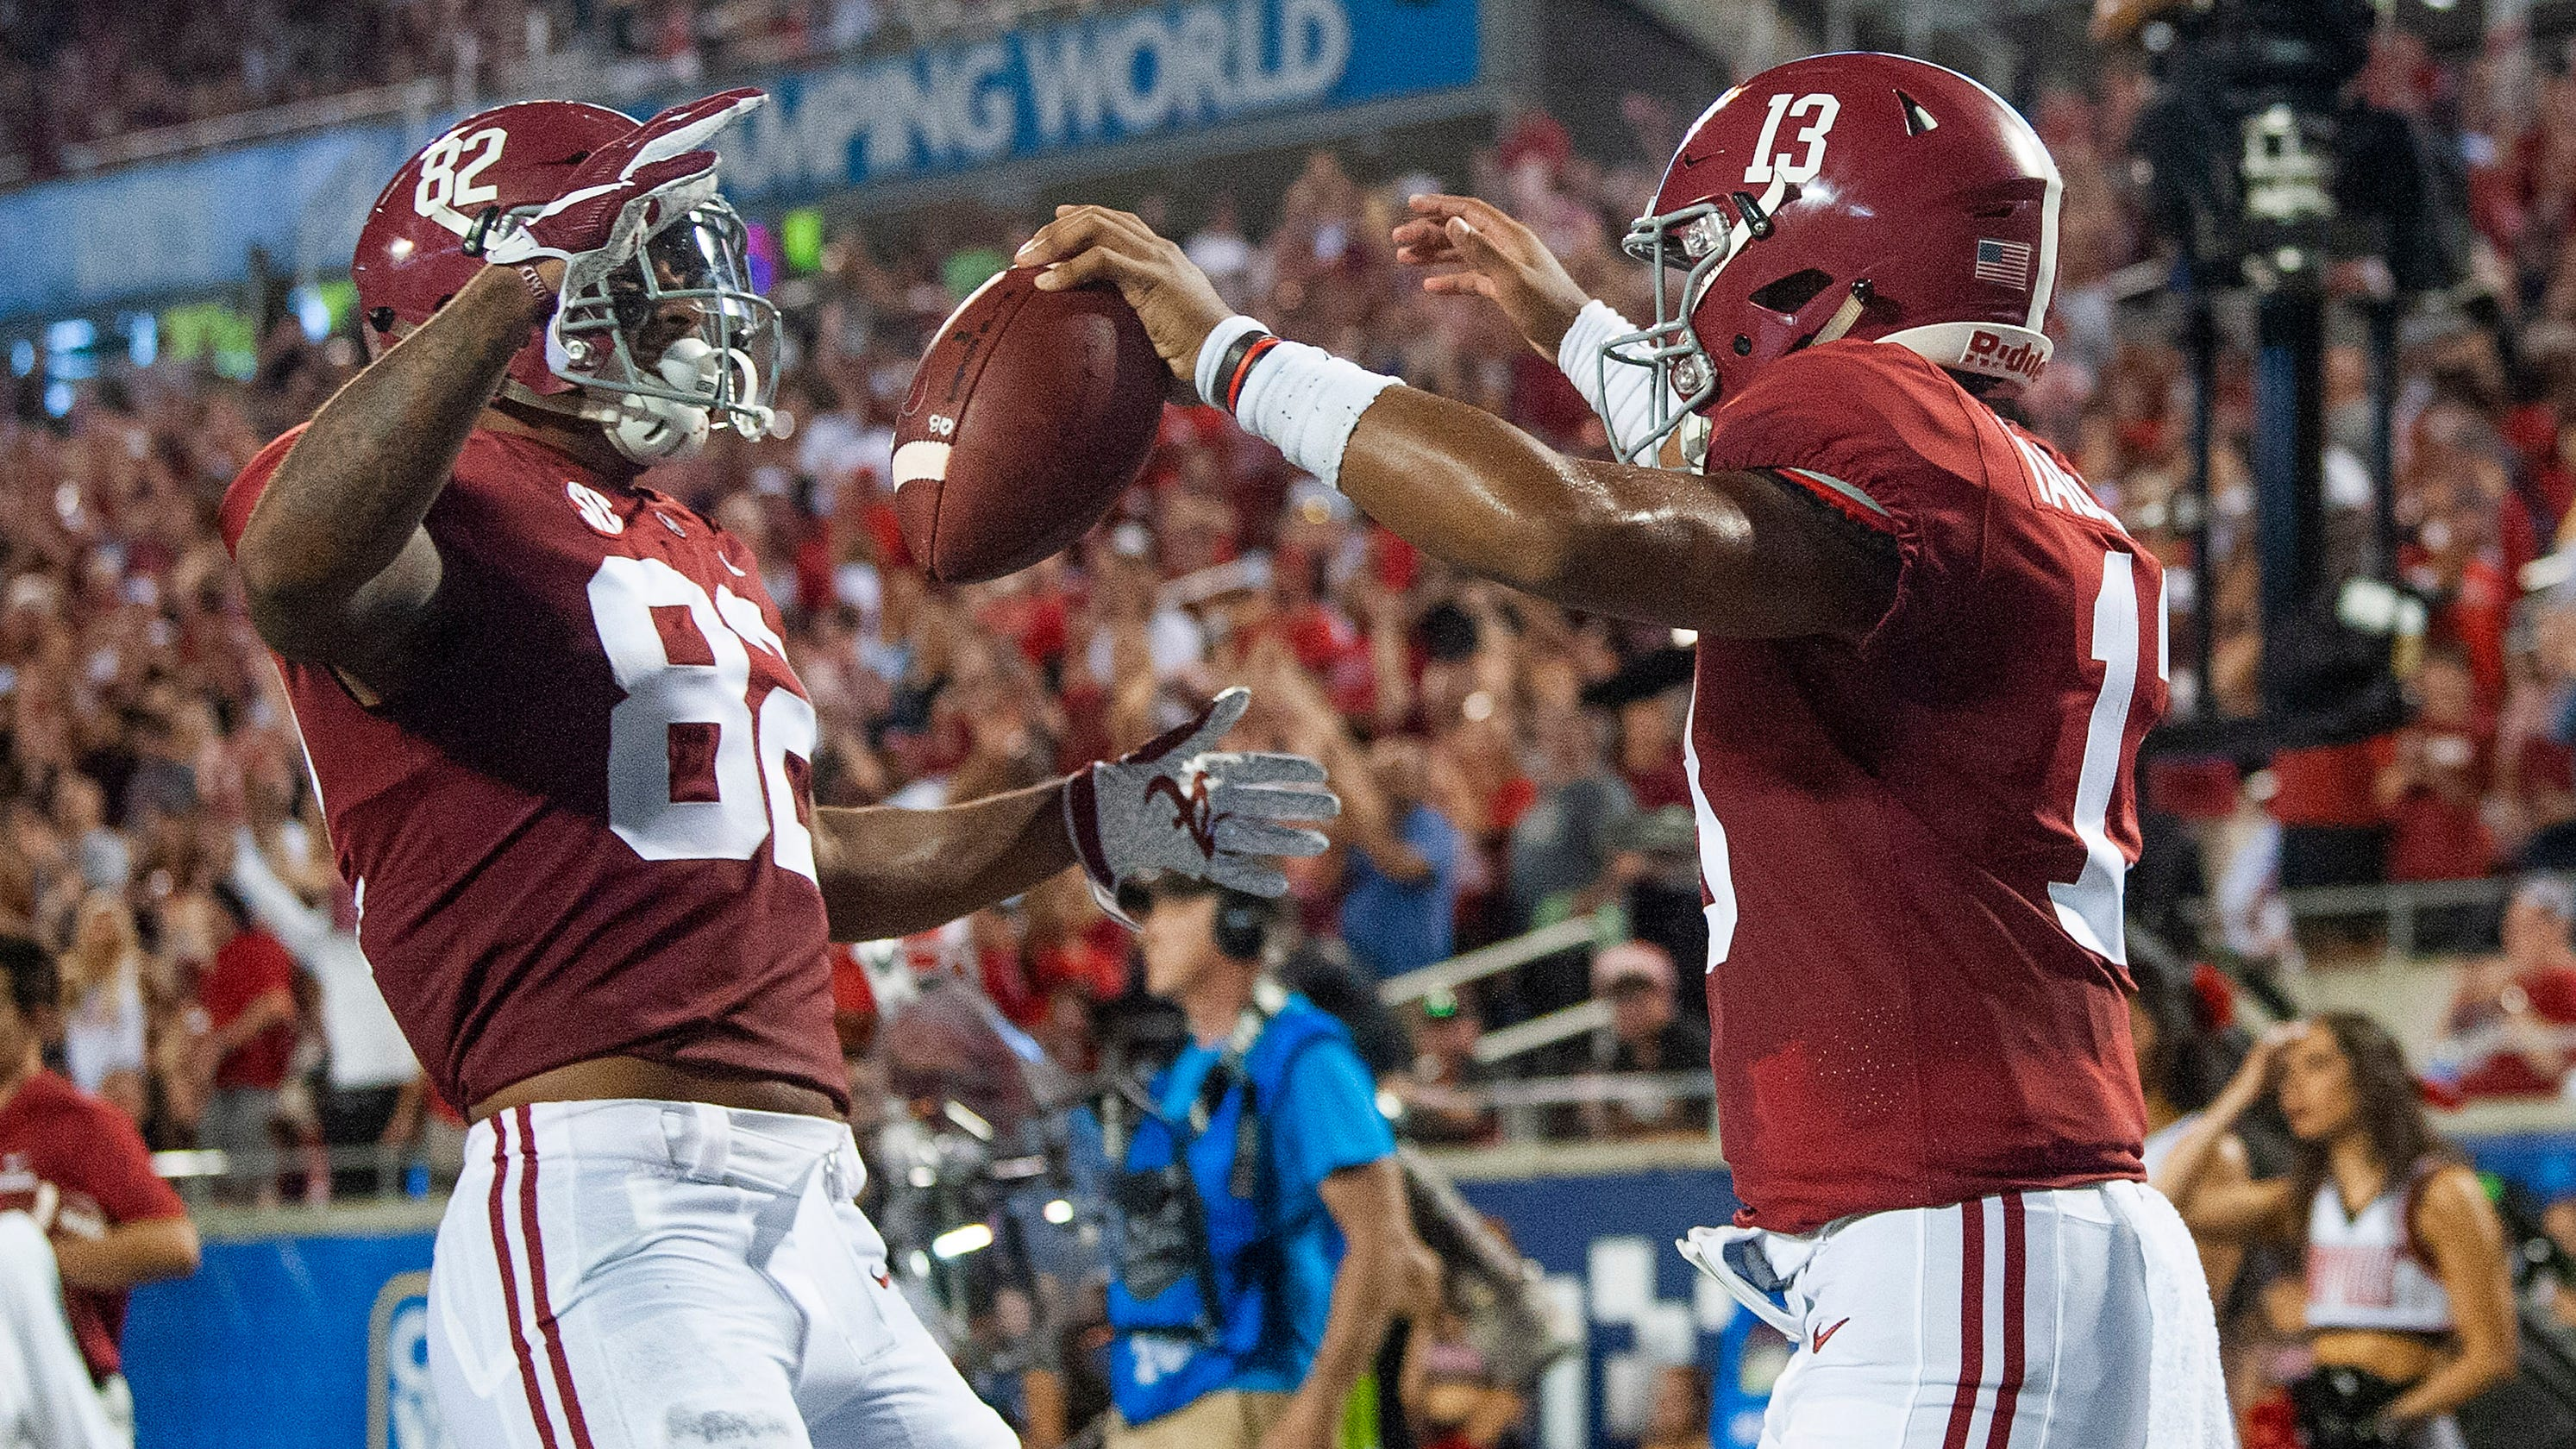 c9f73a029ca Tagovailoa starts, accounts for three TDs in 51-14 Alabama smashing of  Louisville